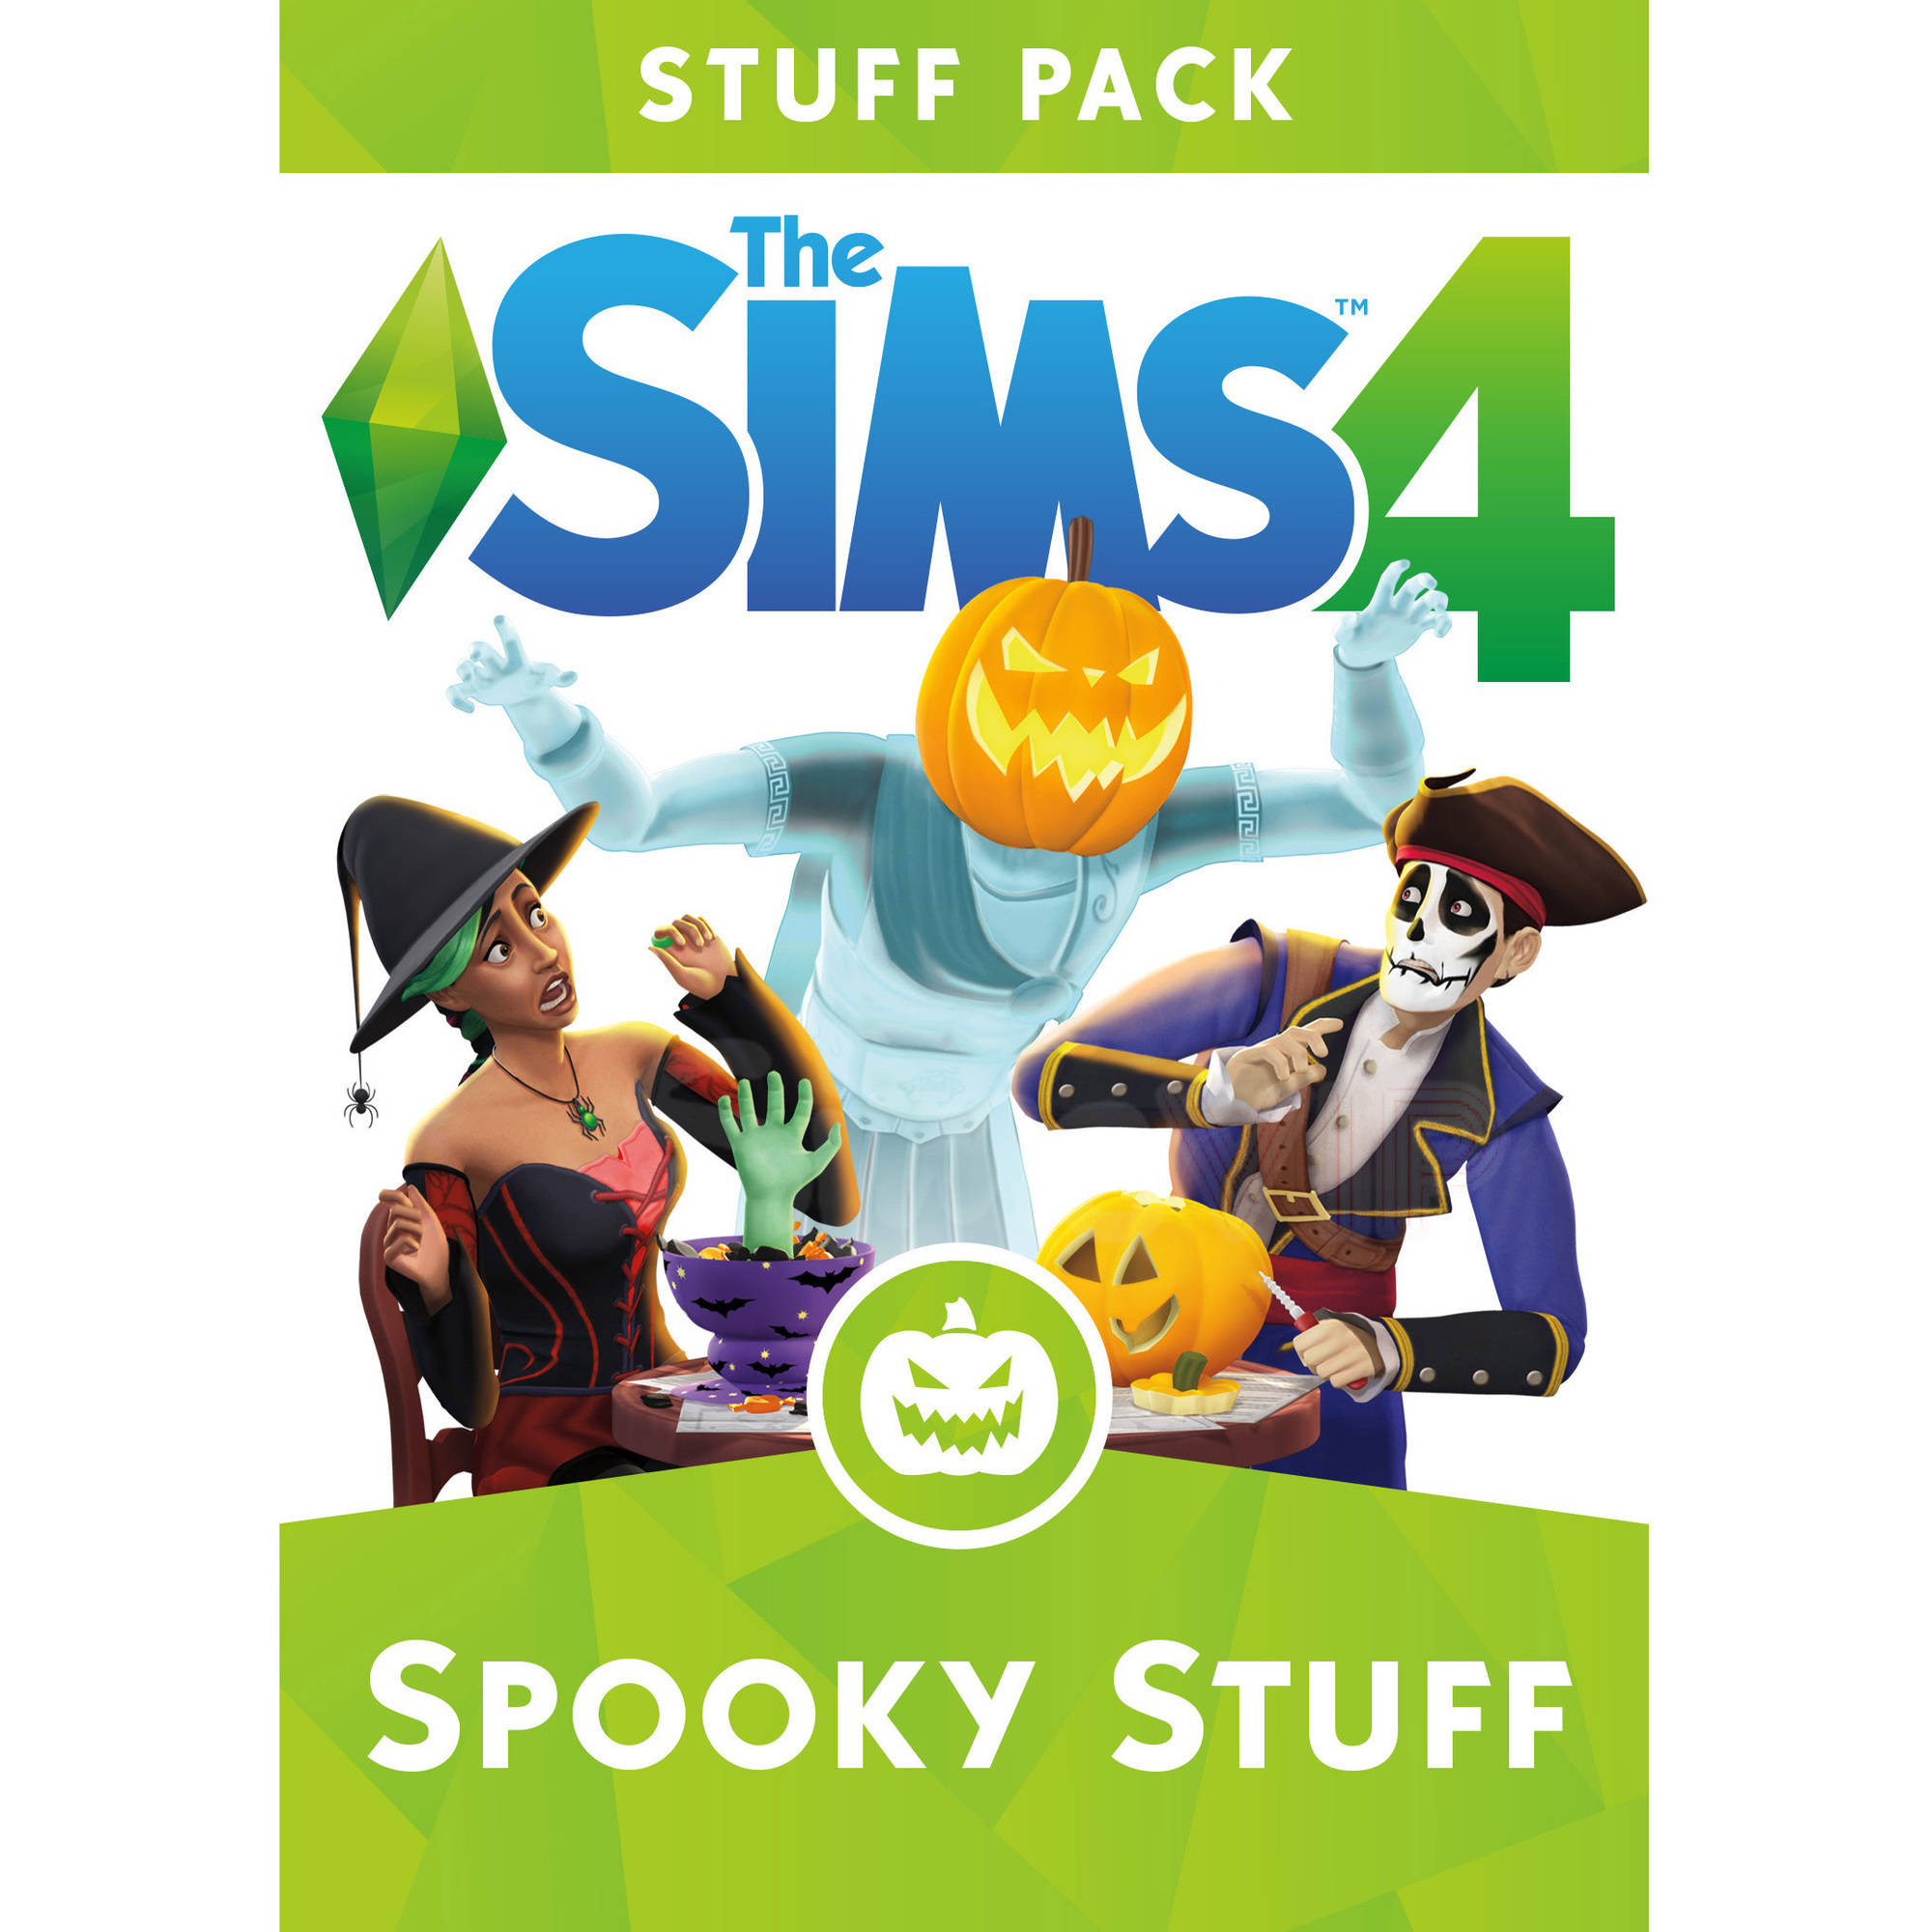 The Sims 4 Spooky Stuff Pack (Digital Code) Electronic Arts